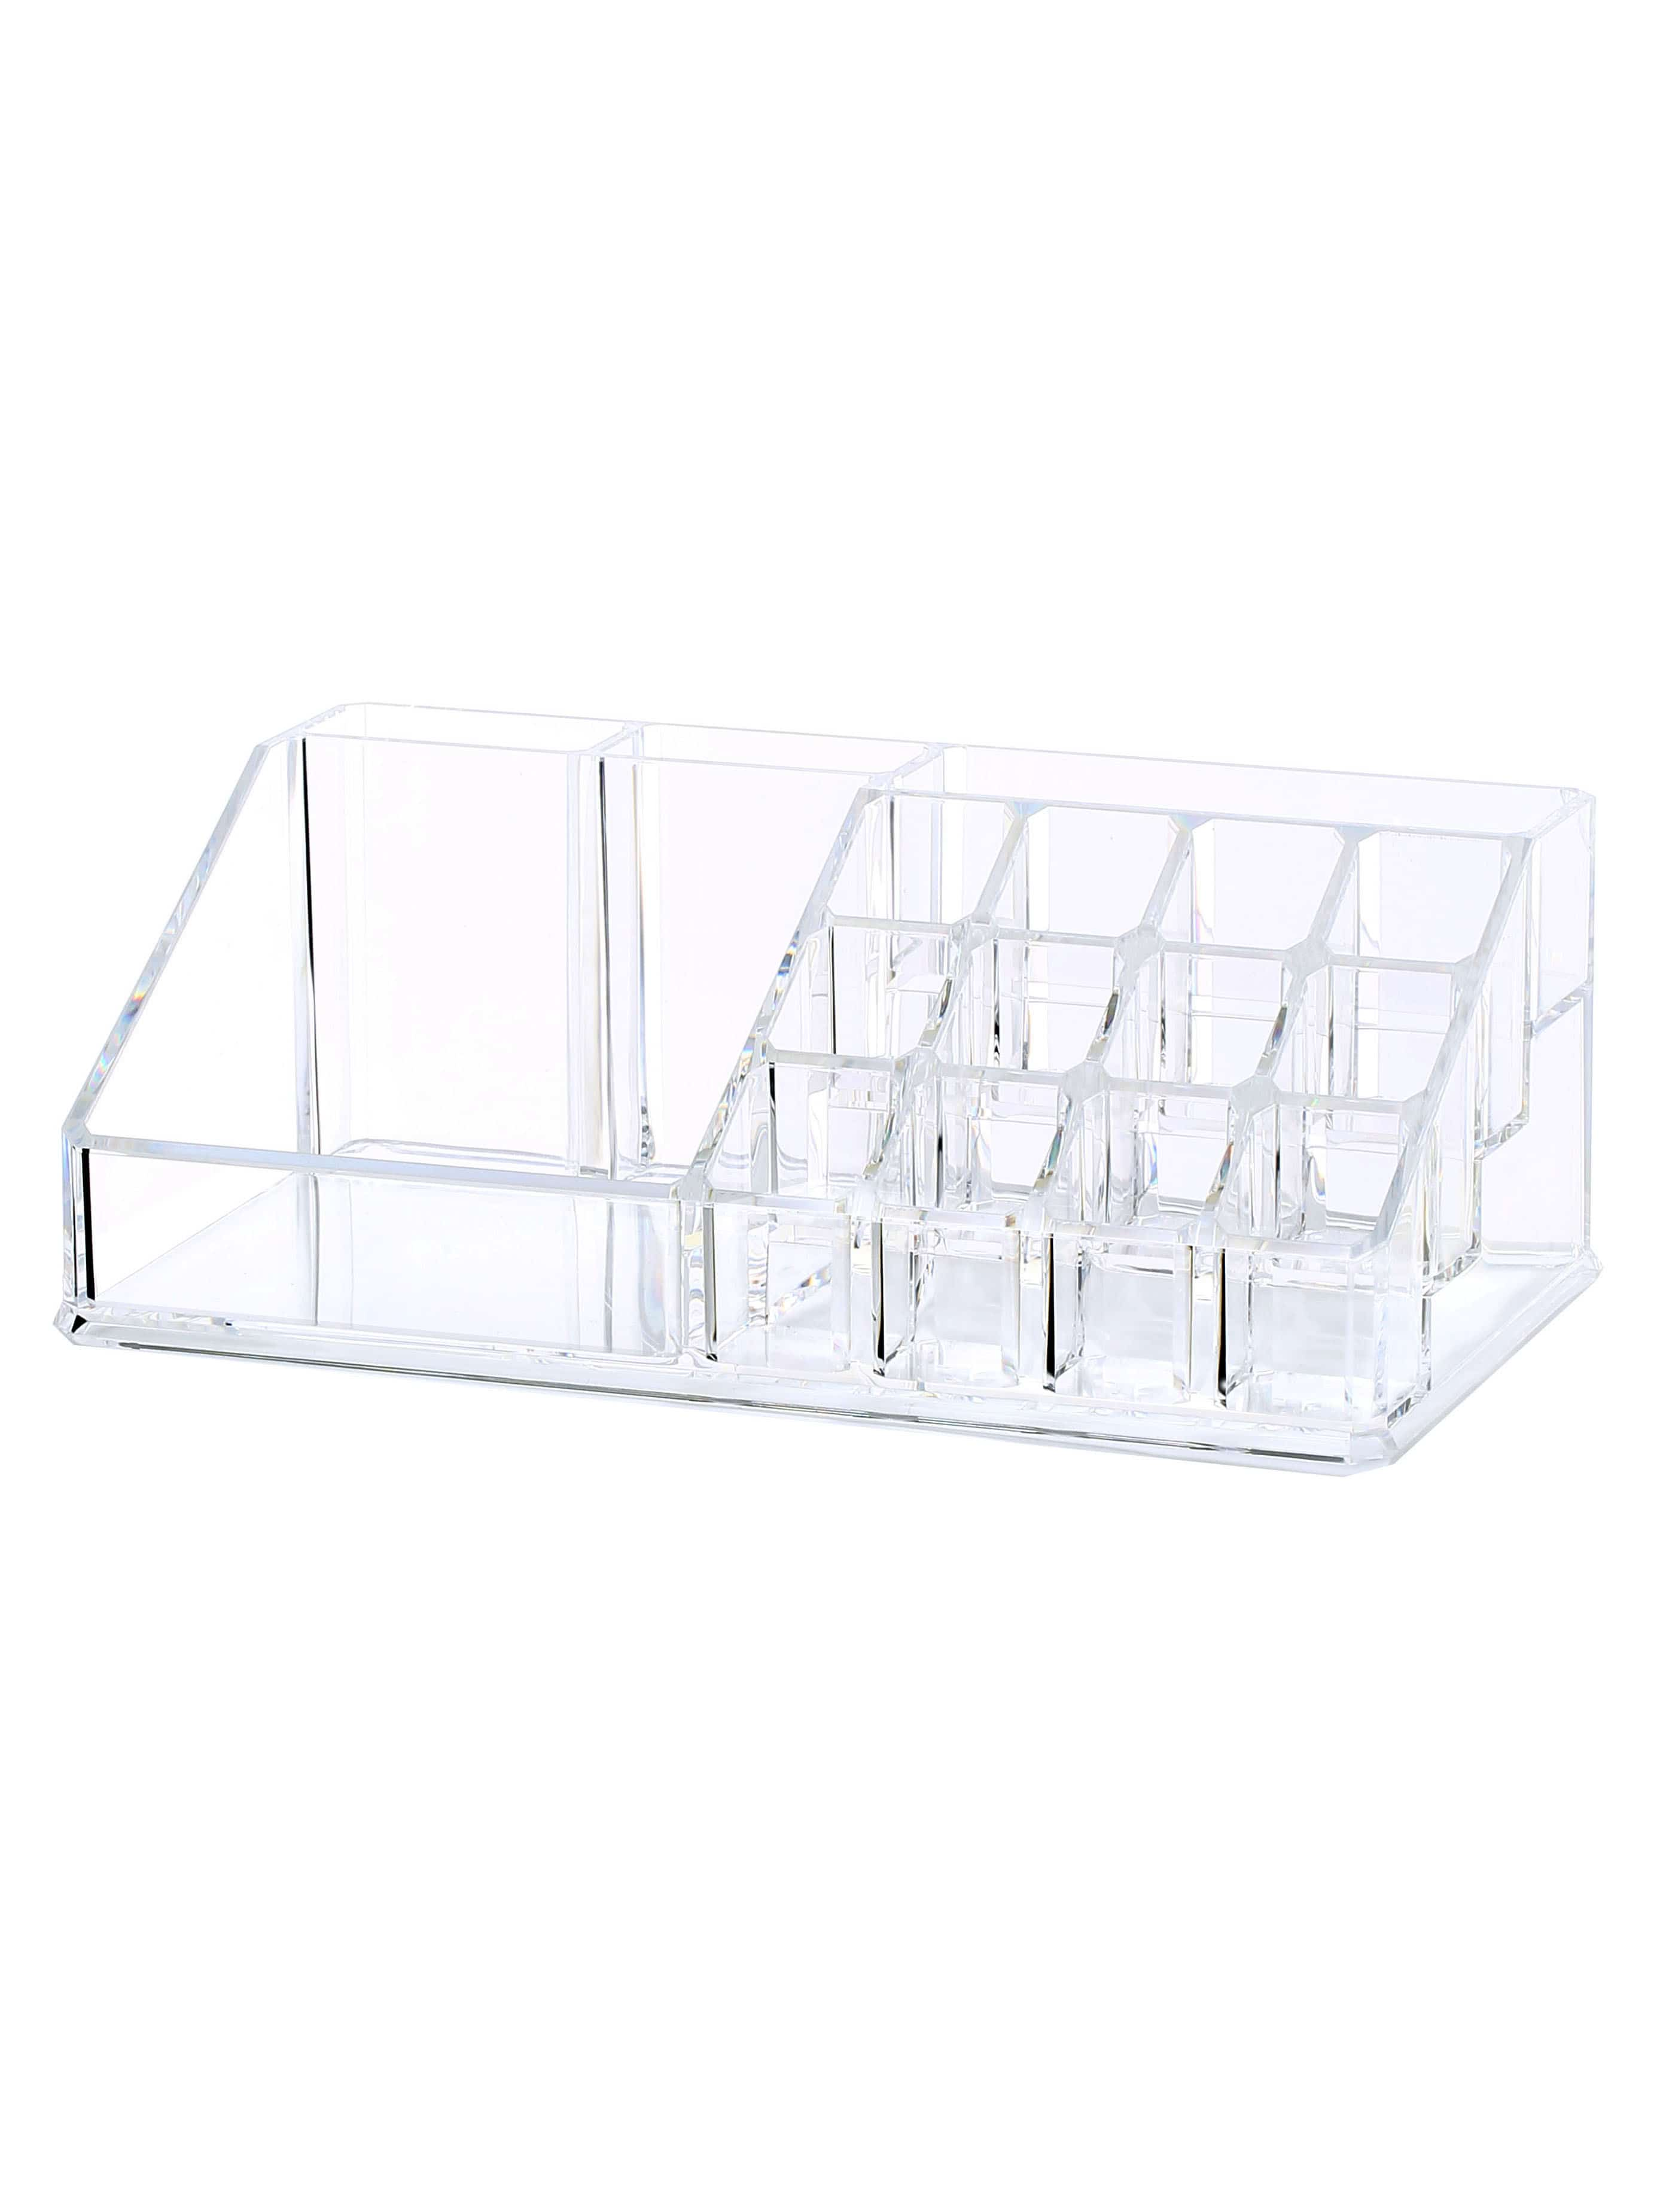 Image of Acrylic Makeup & Beauty Storage